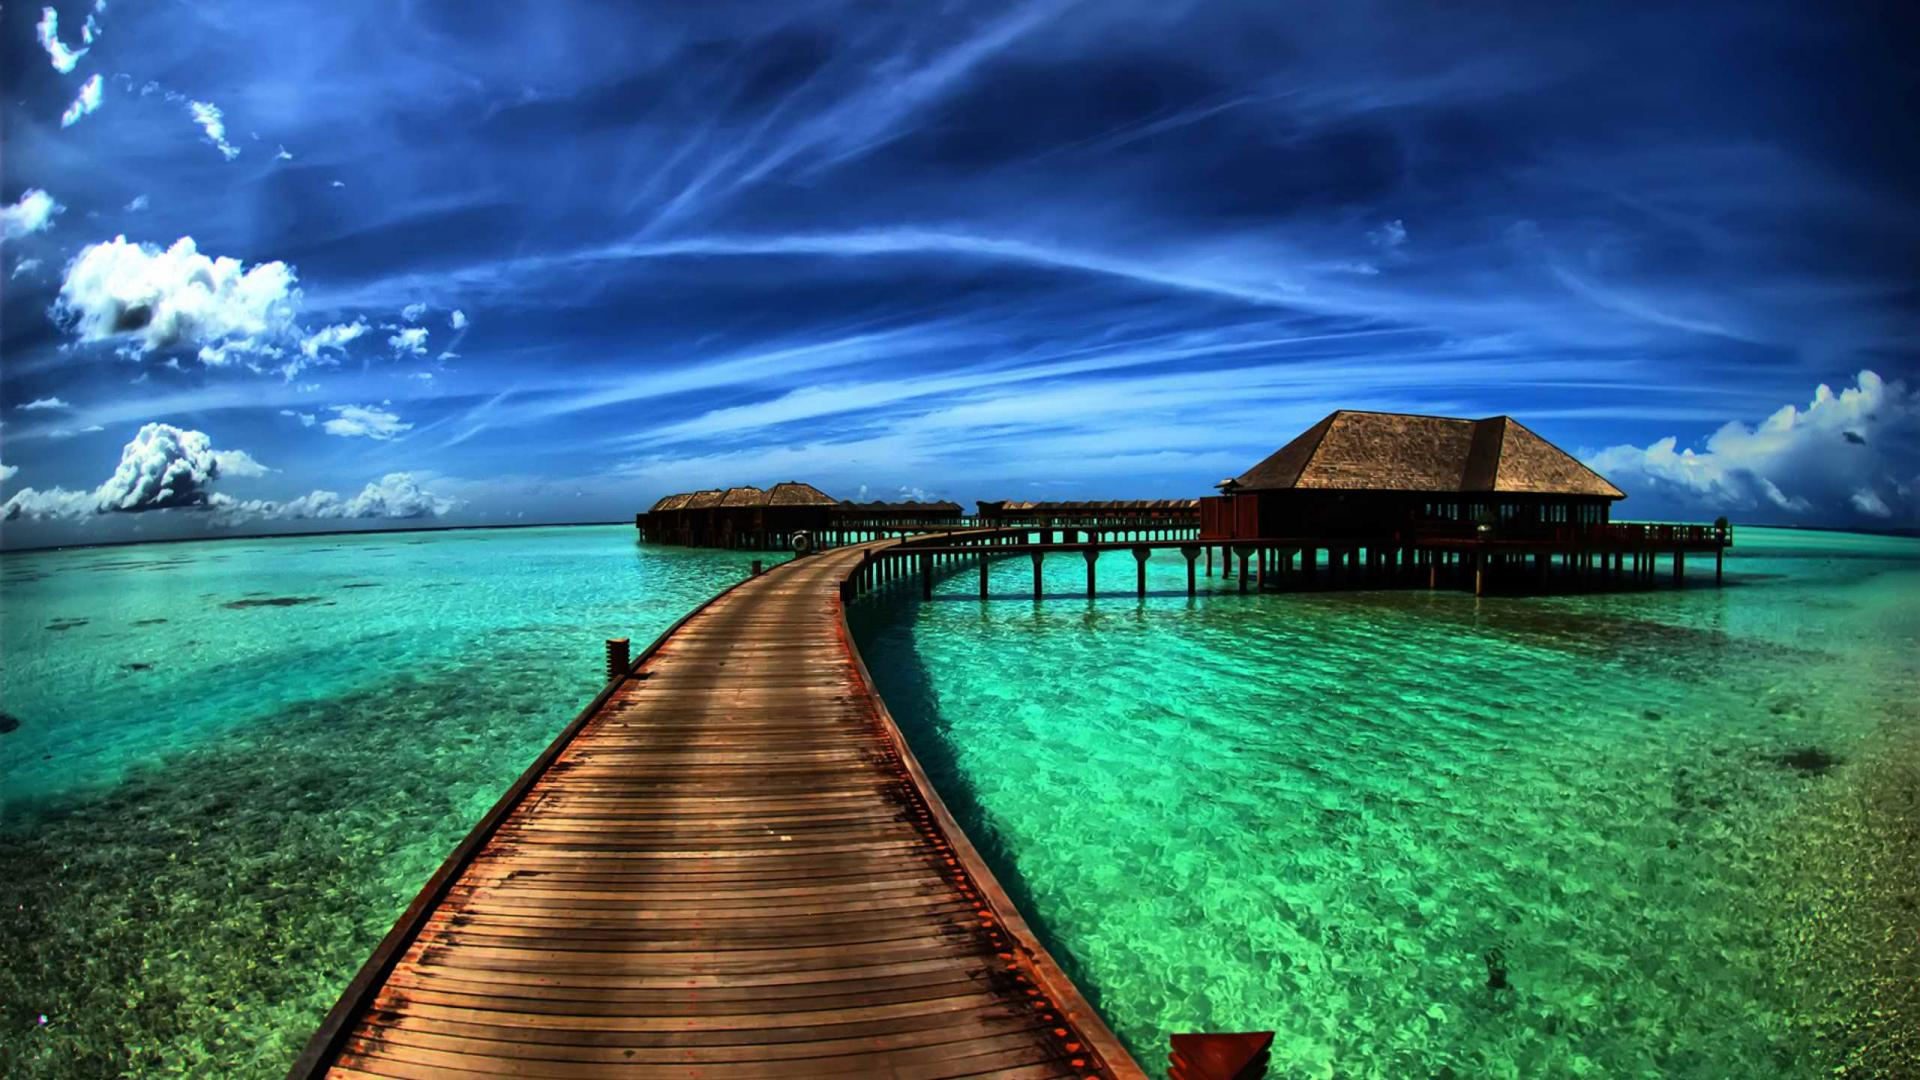 Best Images For Background Hd